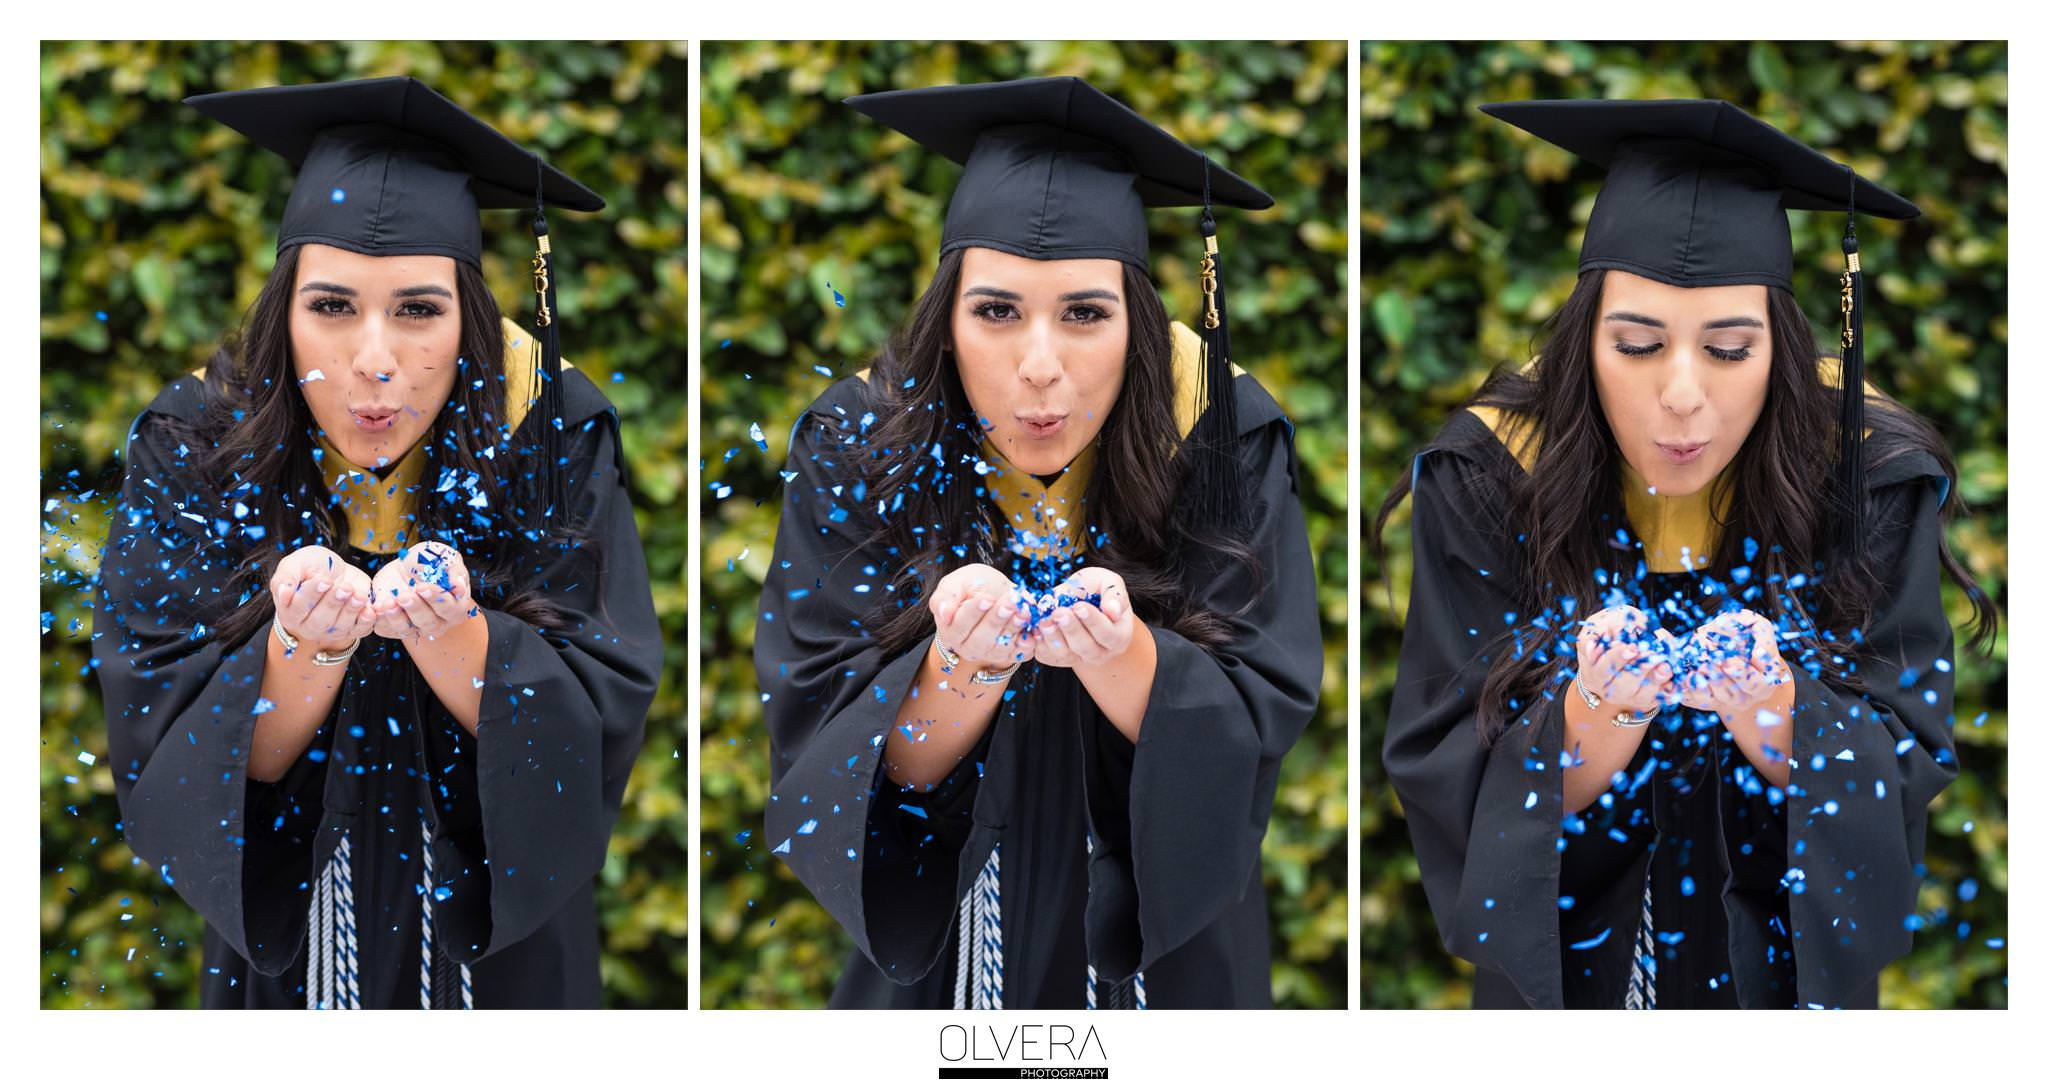 OLLU_Blowing glitter-Senior Portraits_San Antonio-tx-photographer